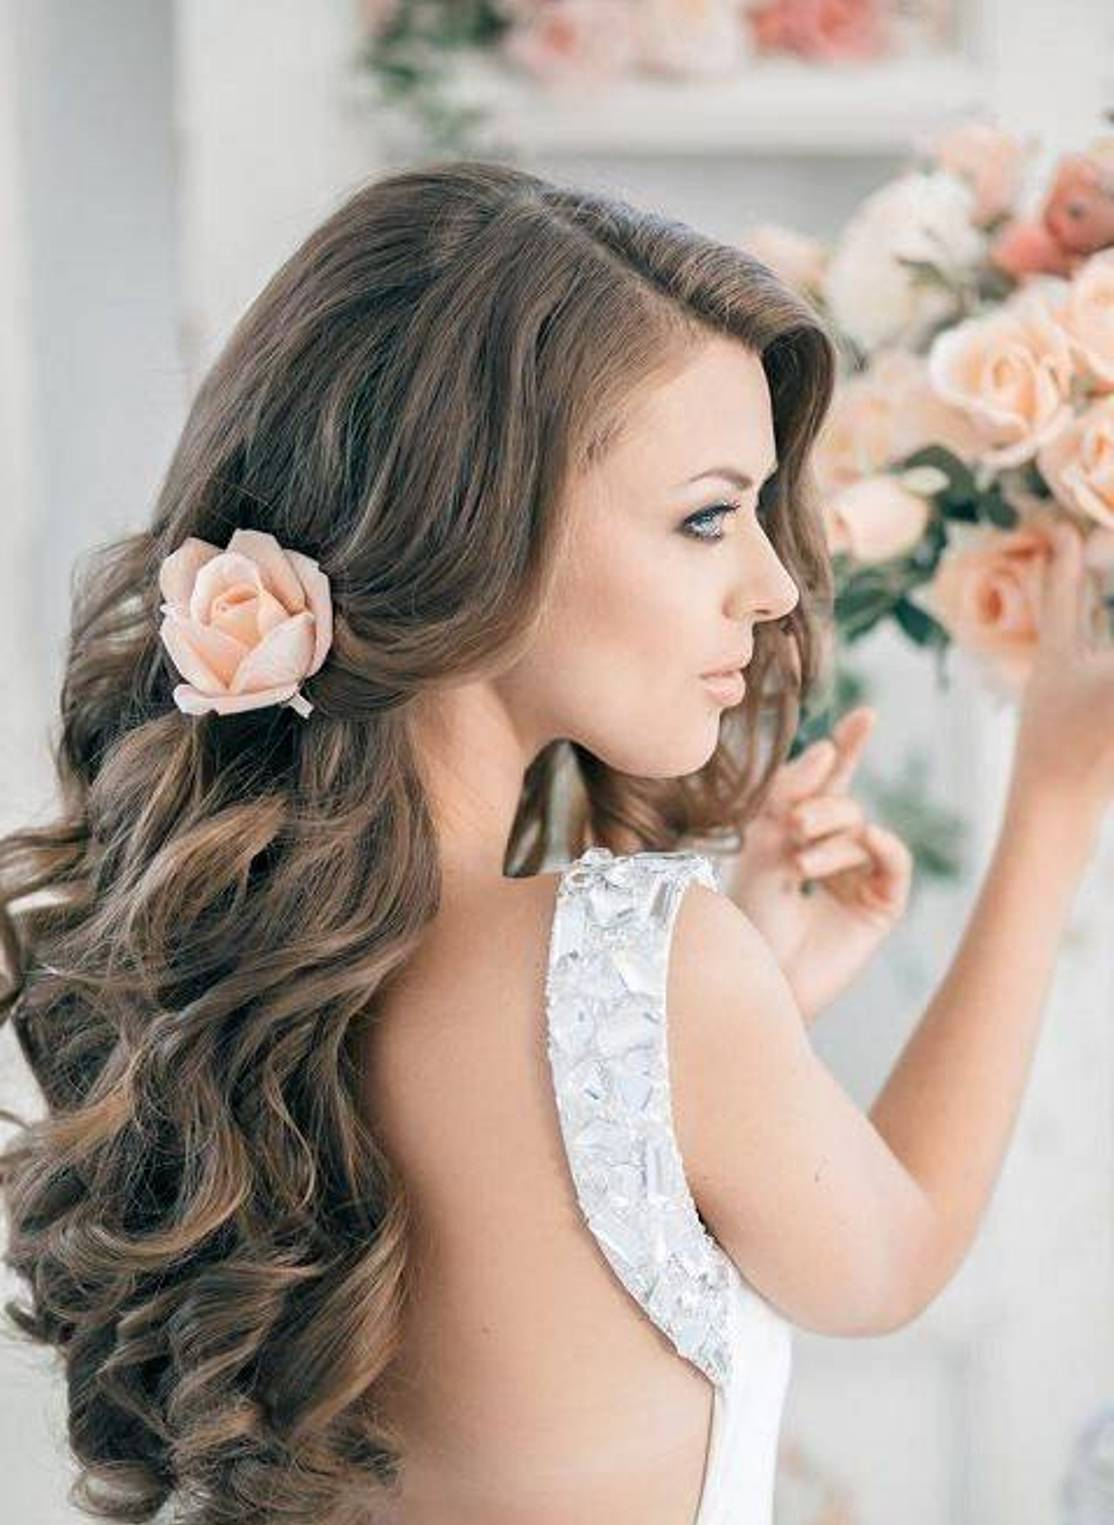 long curly hair wedding styles bridal hairstyles sirmione wedding 2734 | 25 Curly Hair Wedding Hairstyles 25